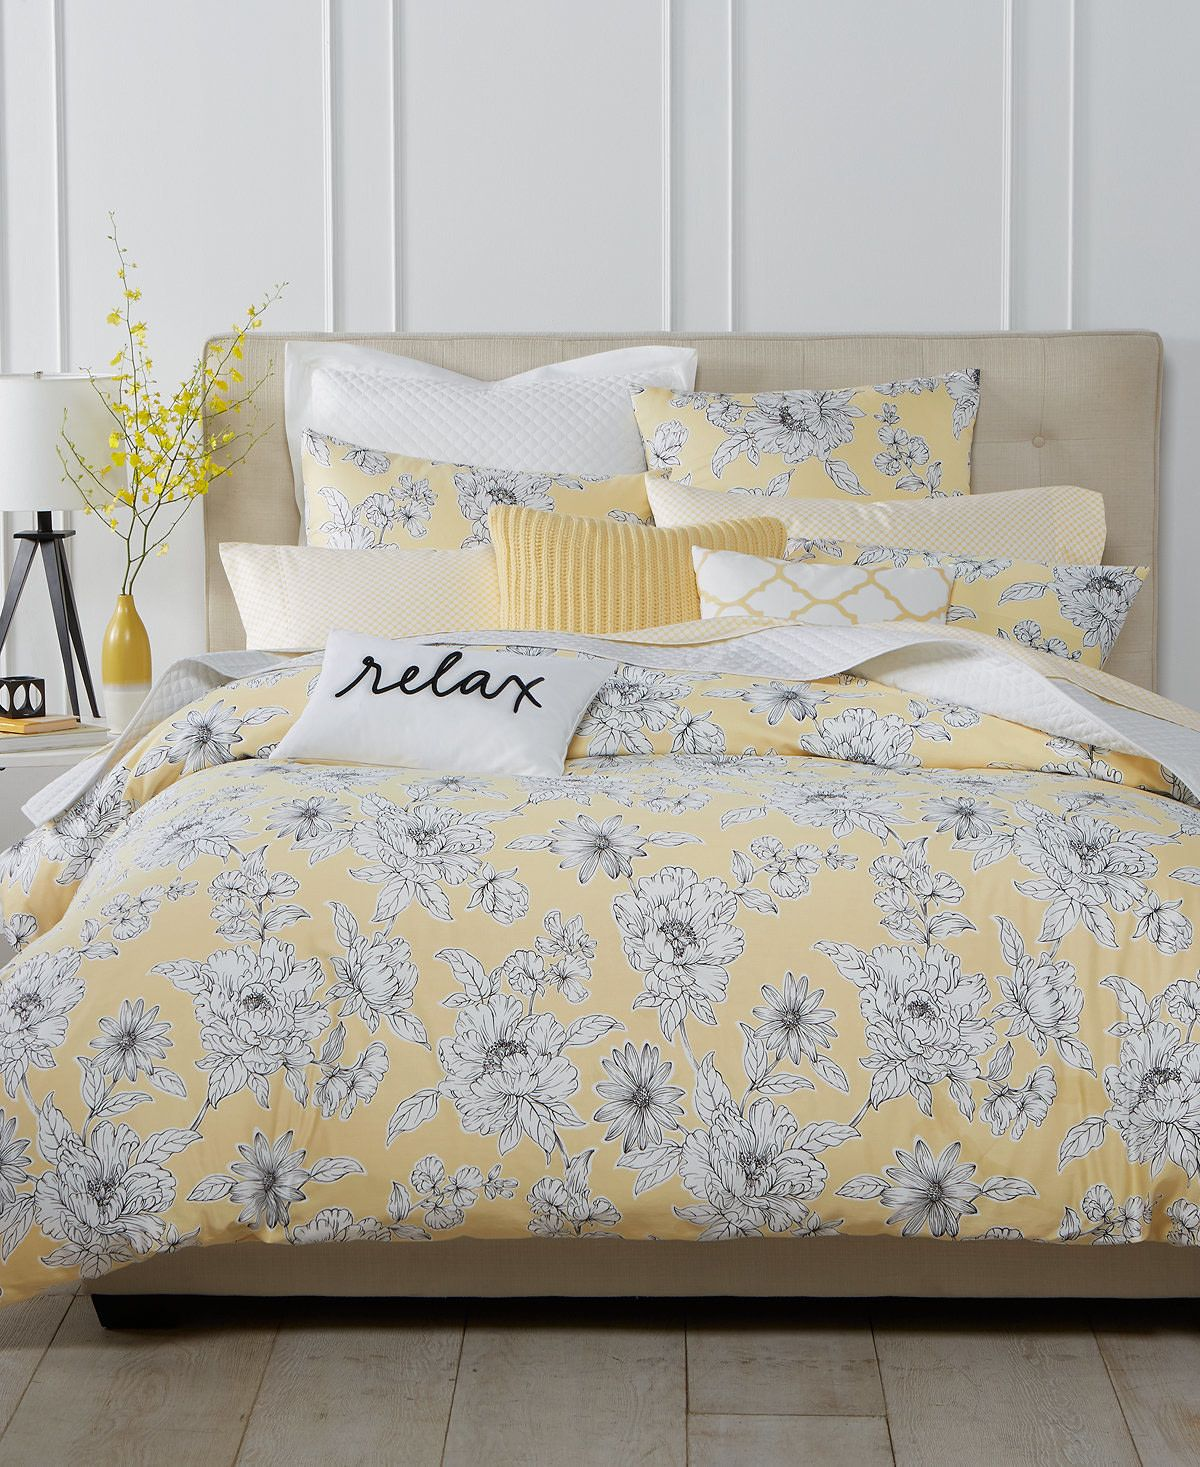 of the best places to buy bedding online ideas for the house